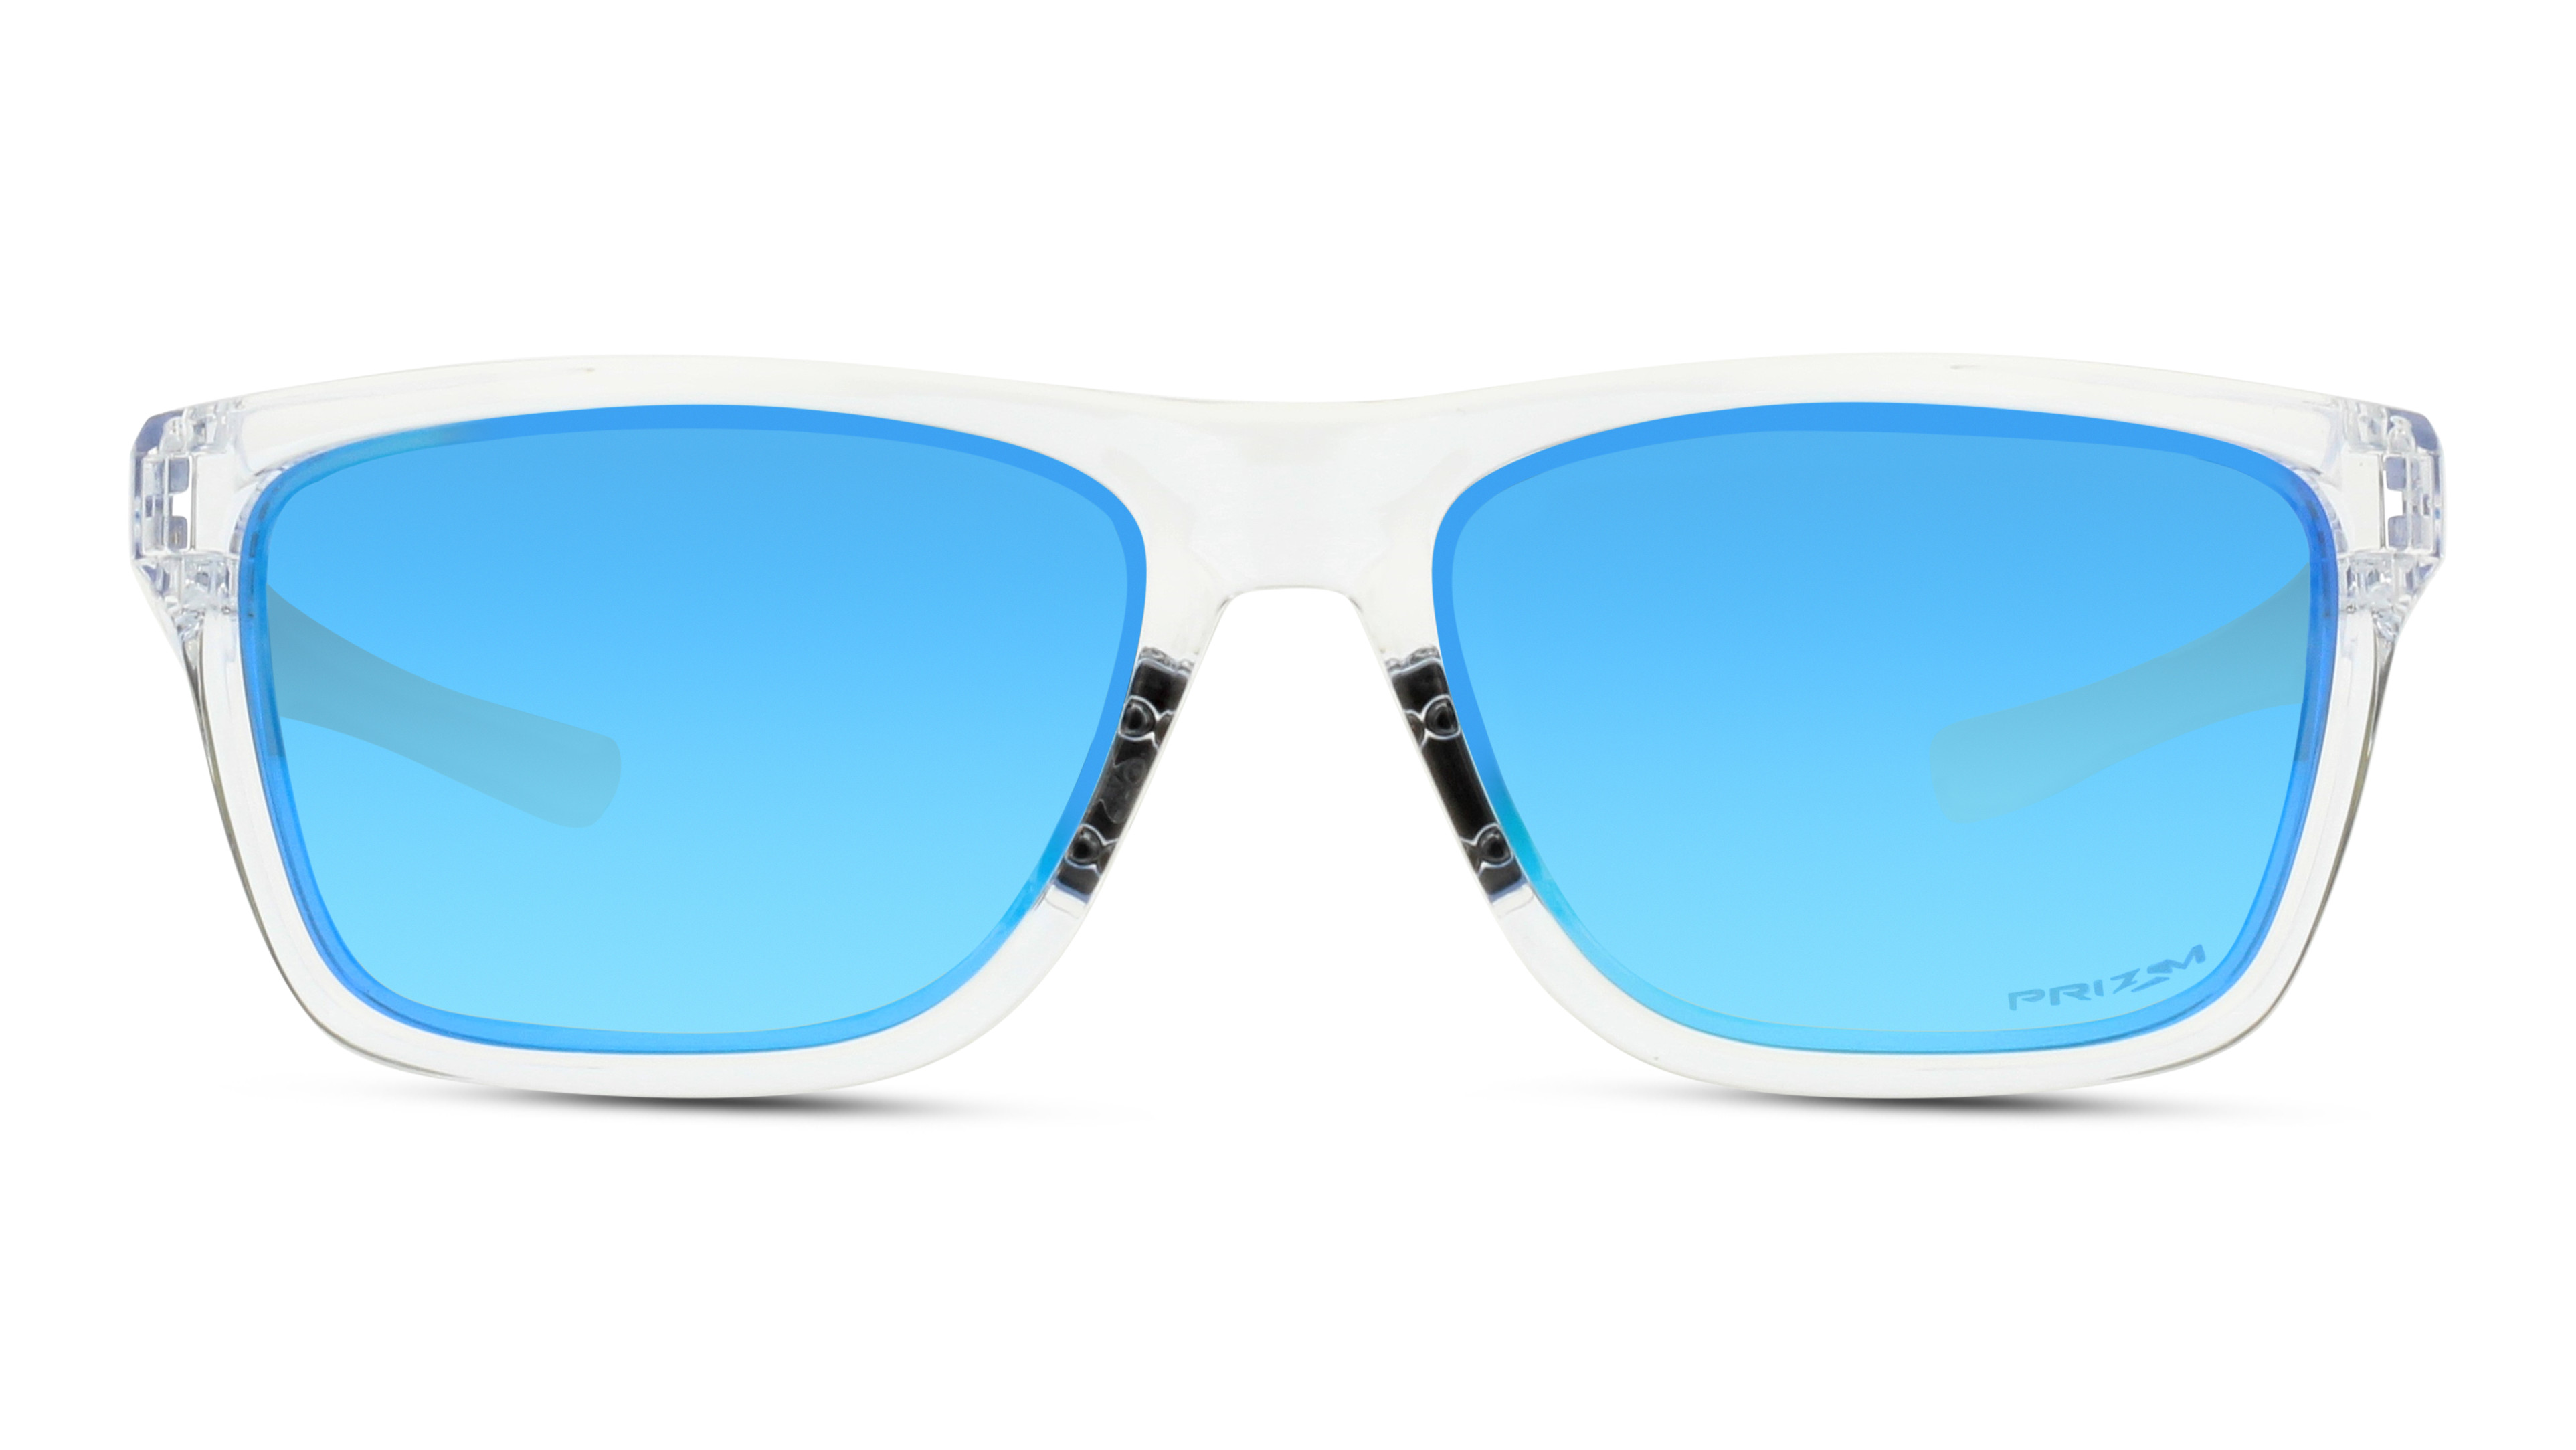 888392337238-front-01-oakley-oo9334-holston-polished-clear